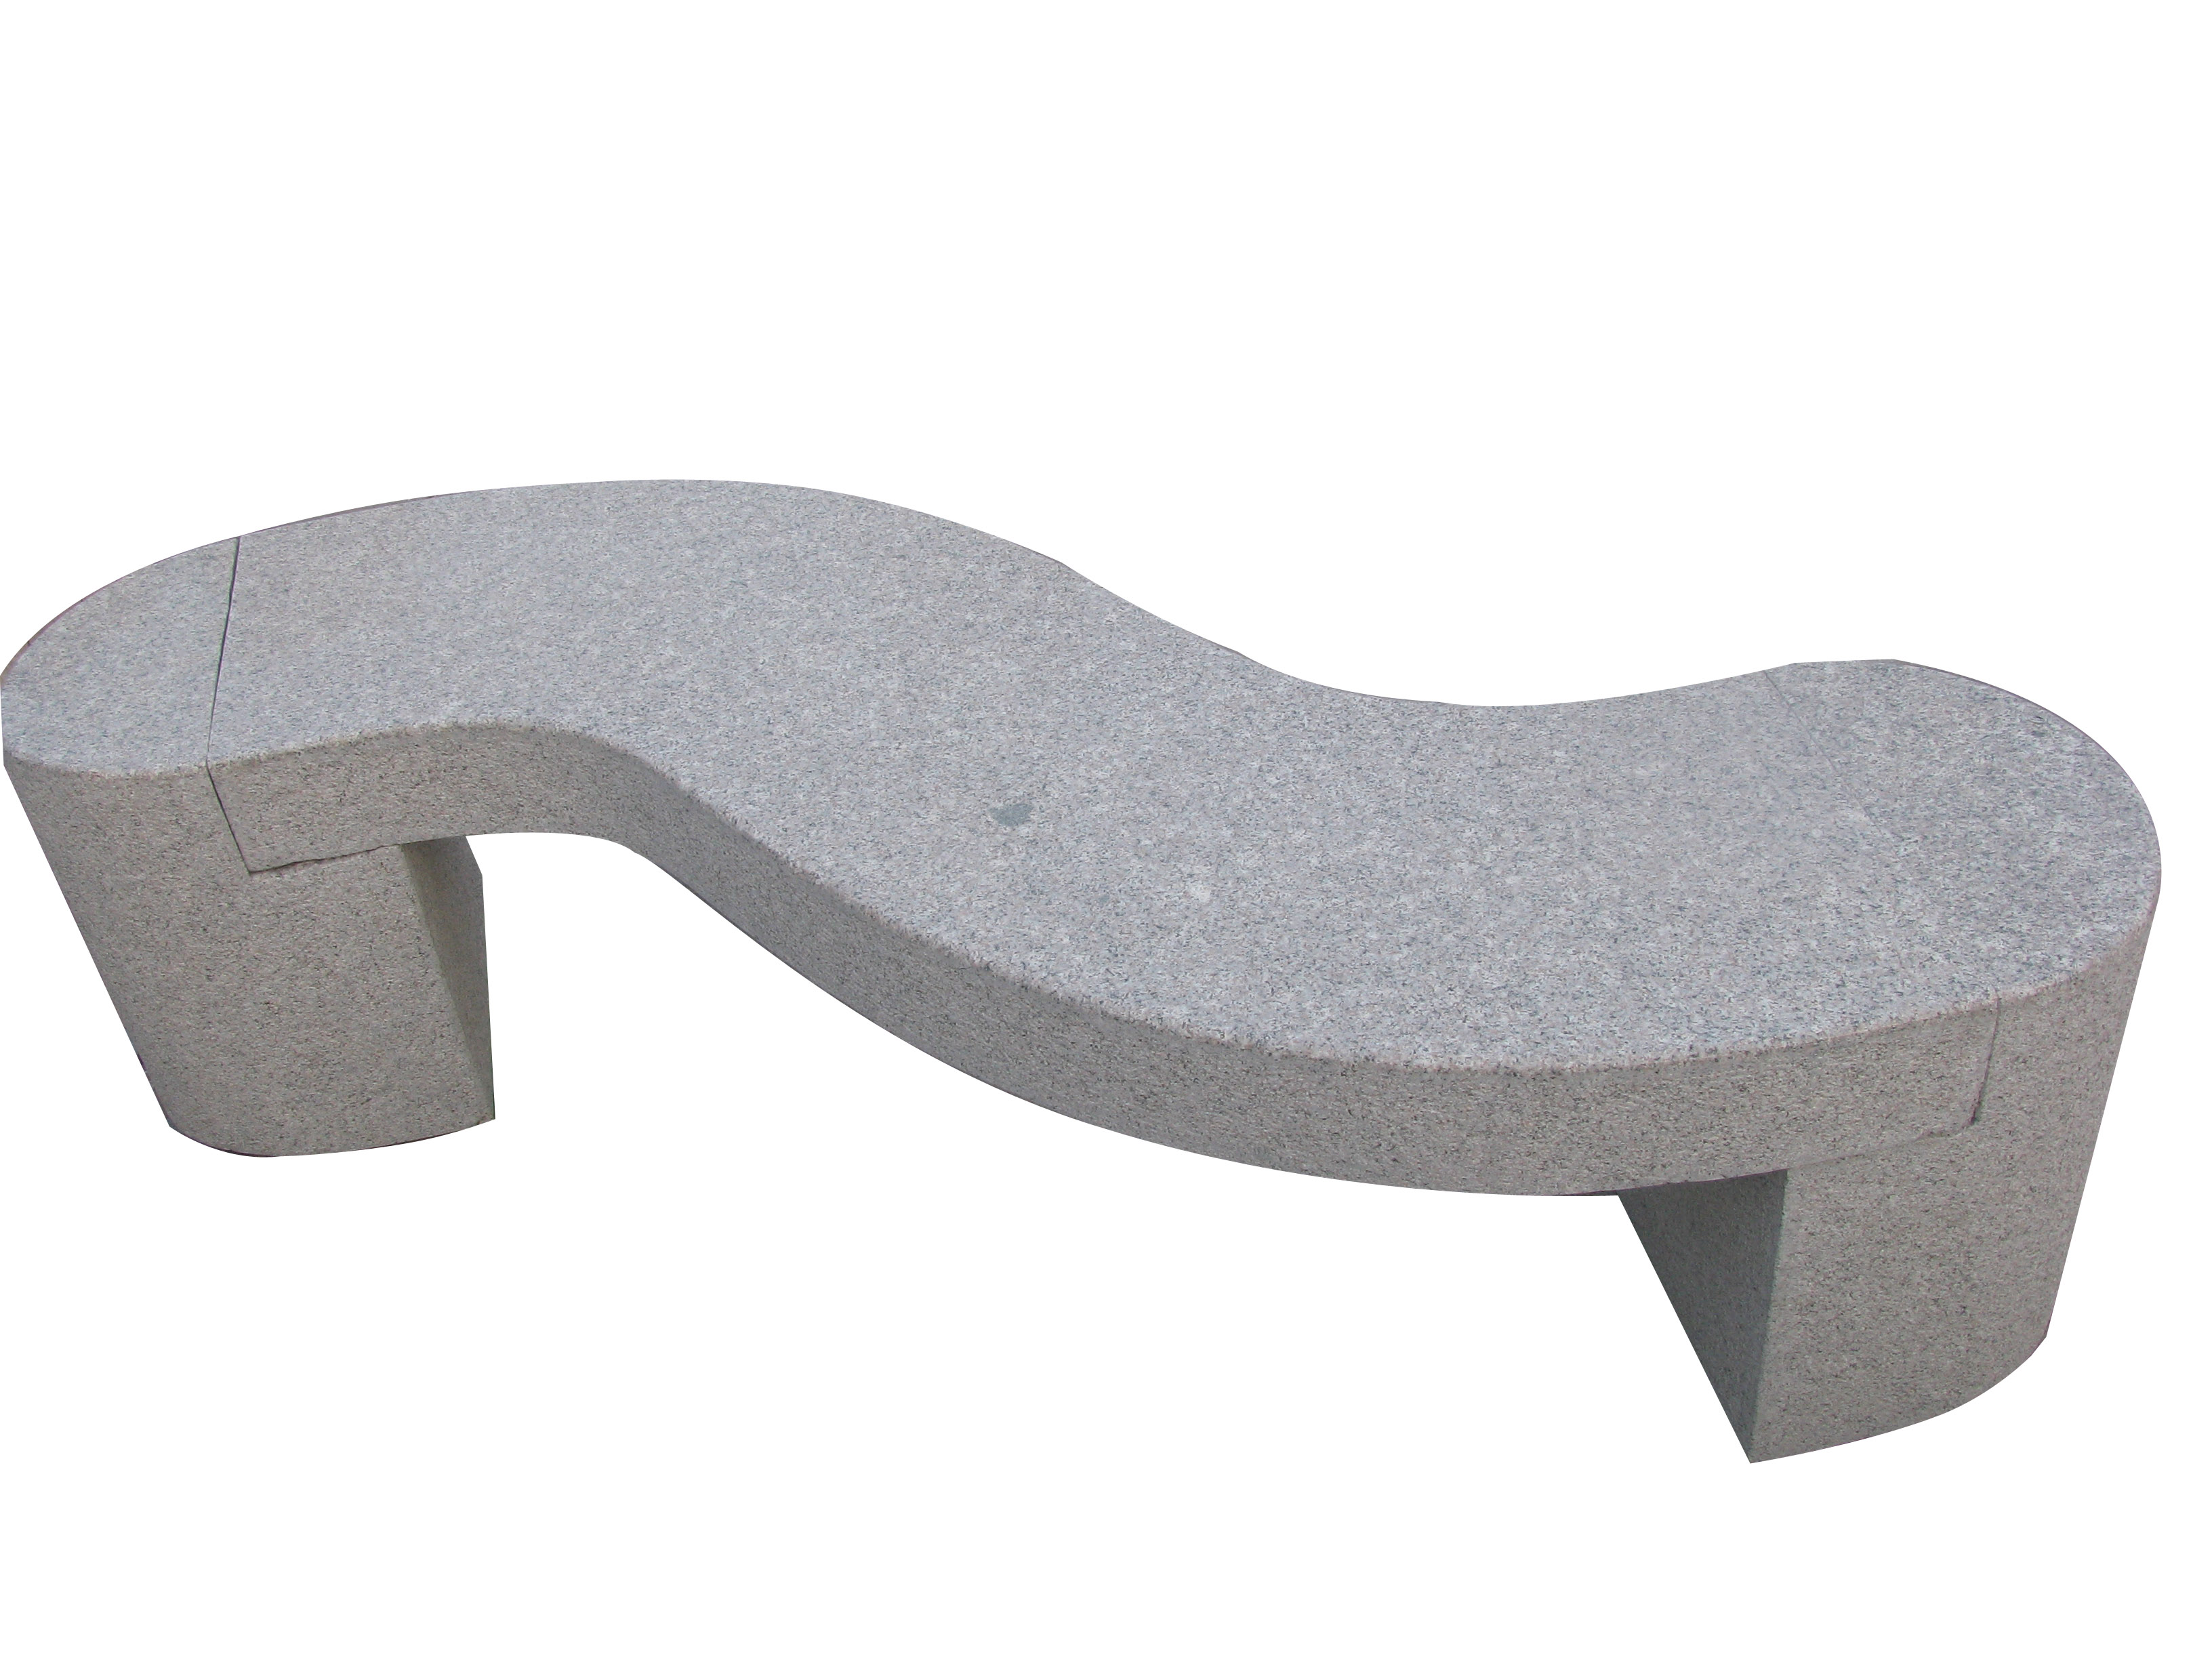 Stone Bench Sculpture